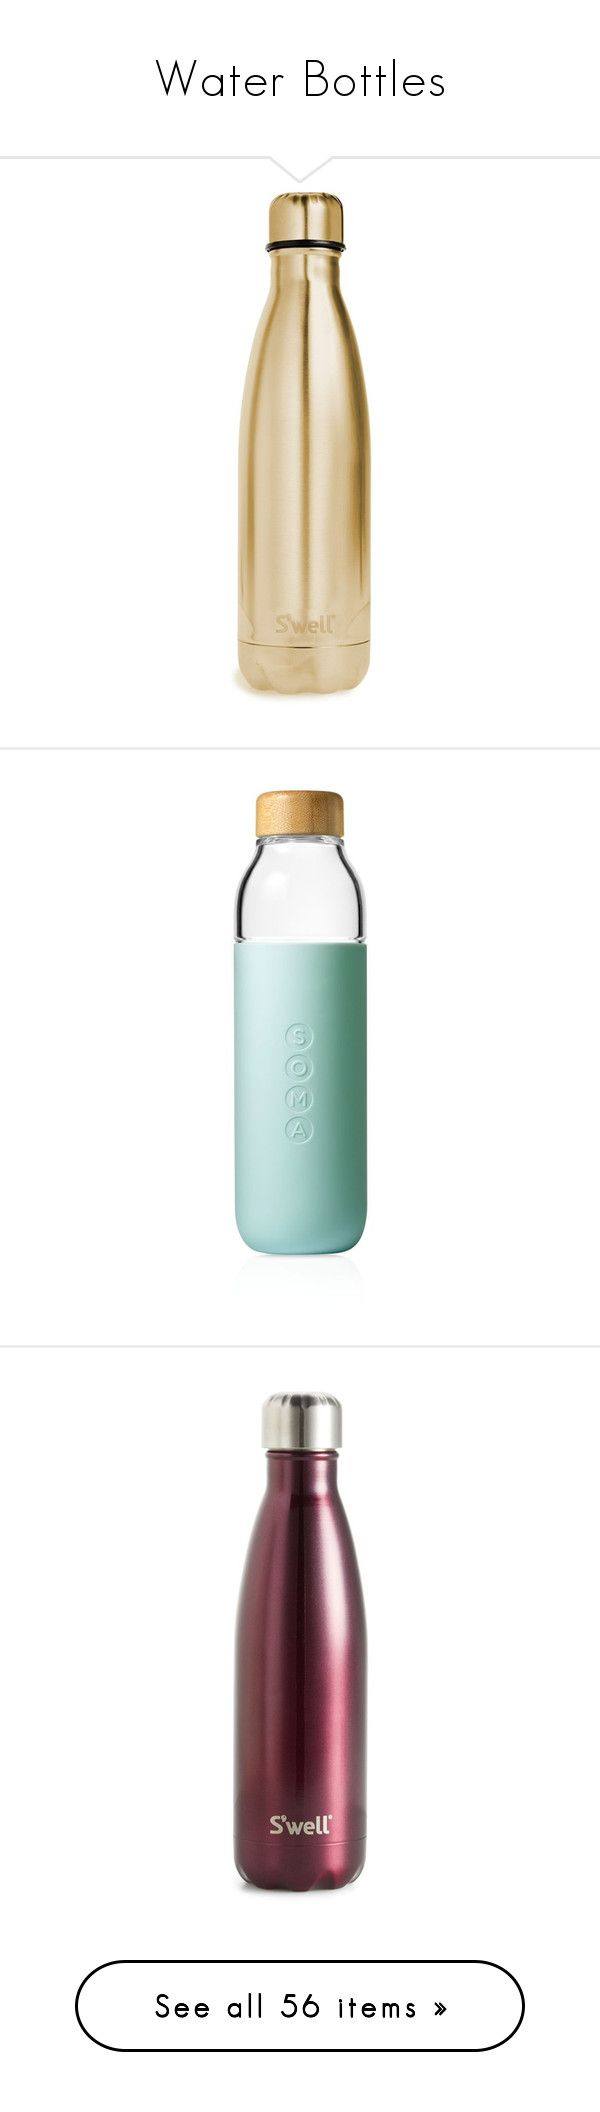 """""""Water Bottles"""" by stacy-hardy ❤ liked on Polyvore featuring home, kitchen & dining, fillers, accessories, food and drink, drinks, yellow gold, serveware, mint and soma water bottle"""